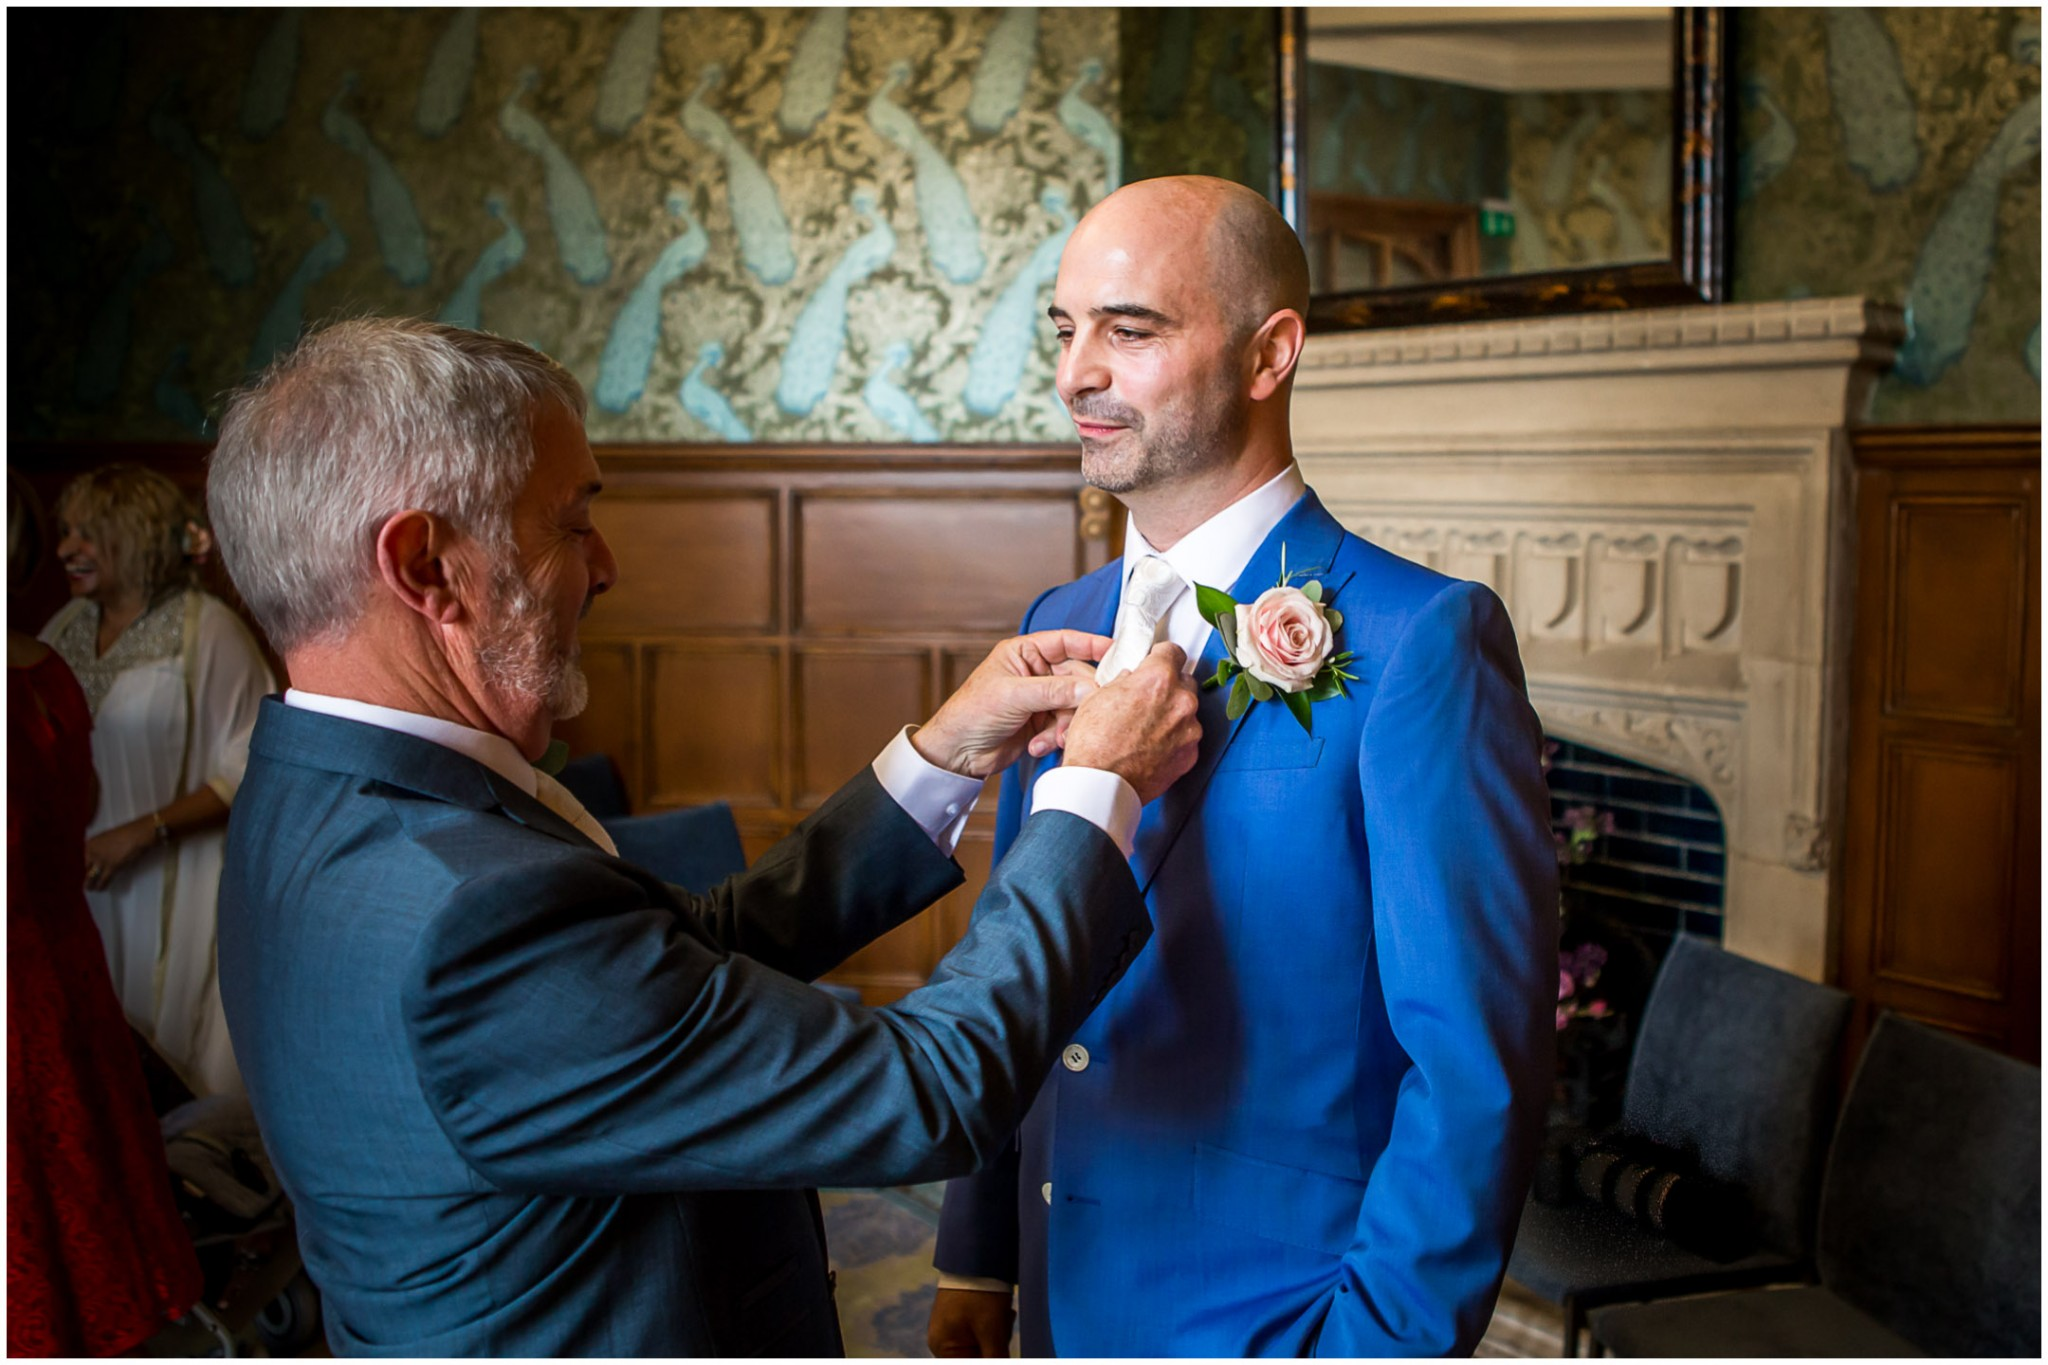 winchester-basing-room-wedding-photography-010